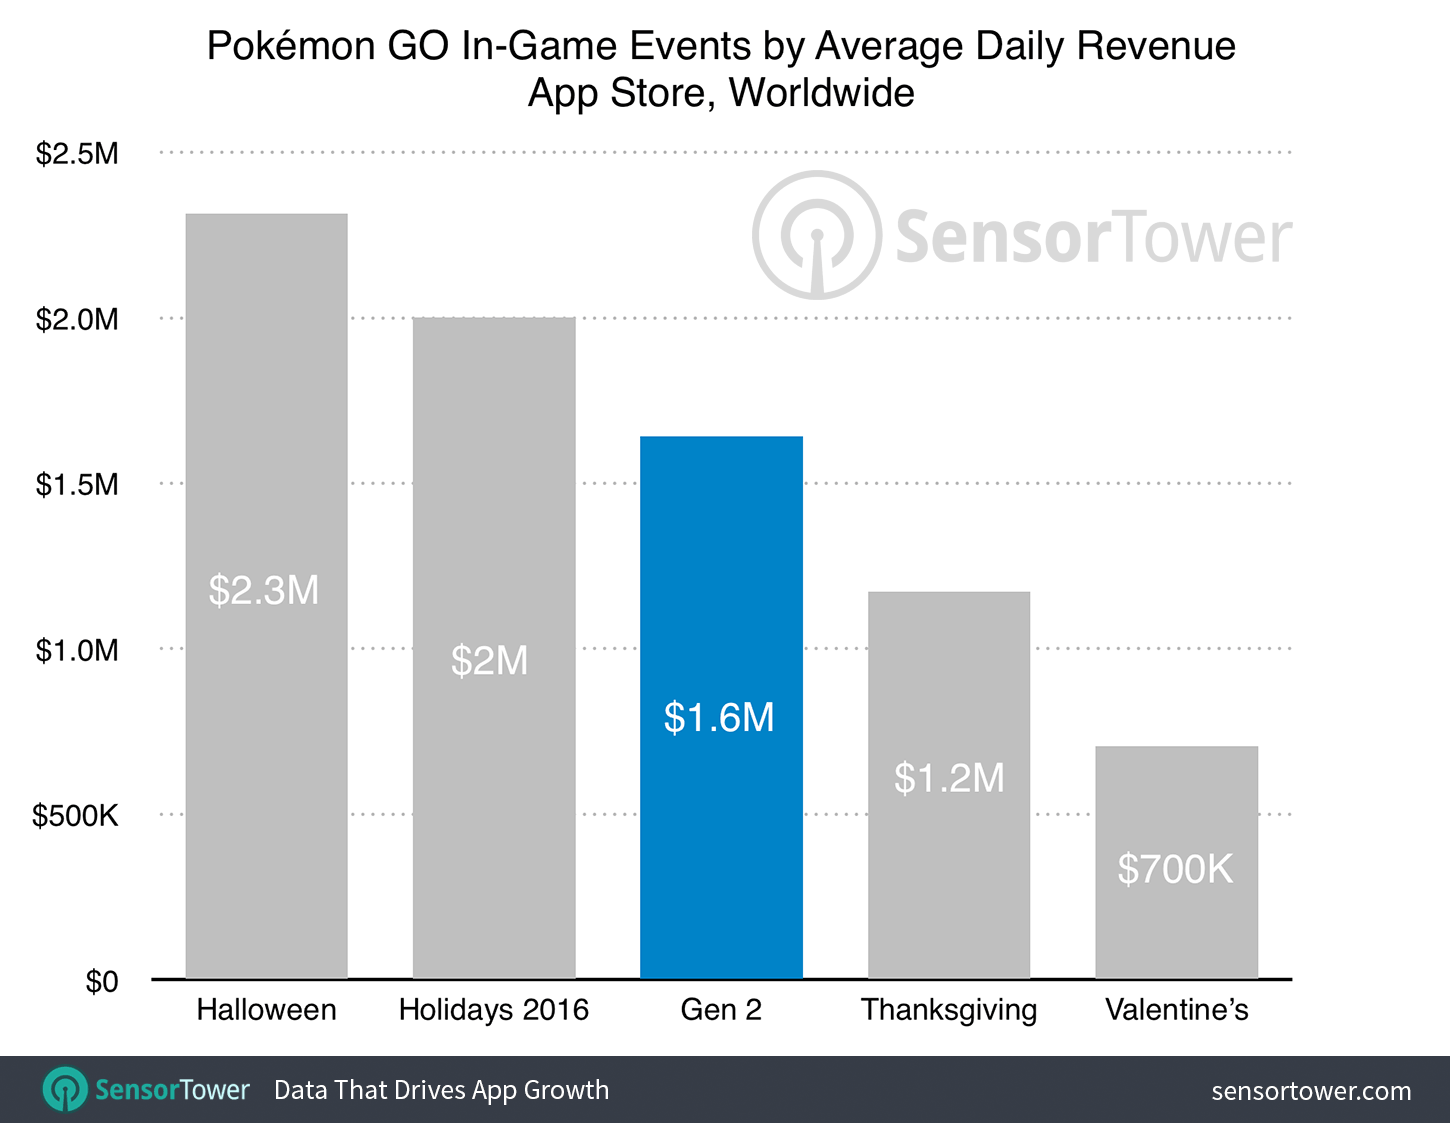 Pokémon GO's First Major Update Captures Less Daily Revenue Than